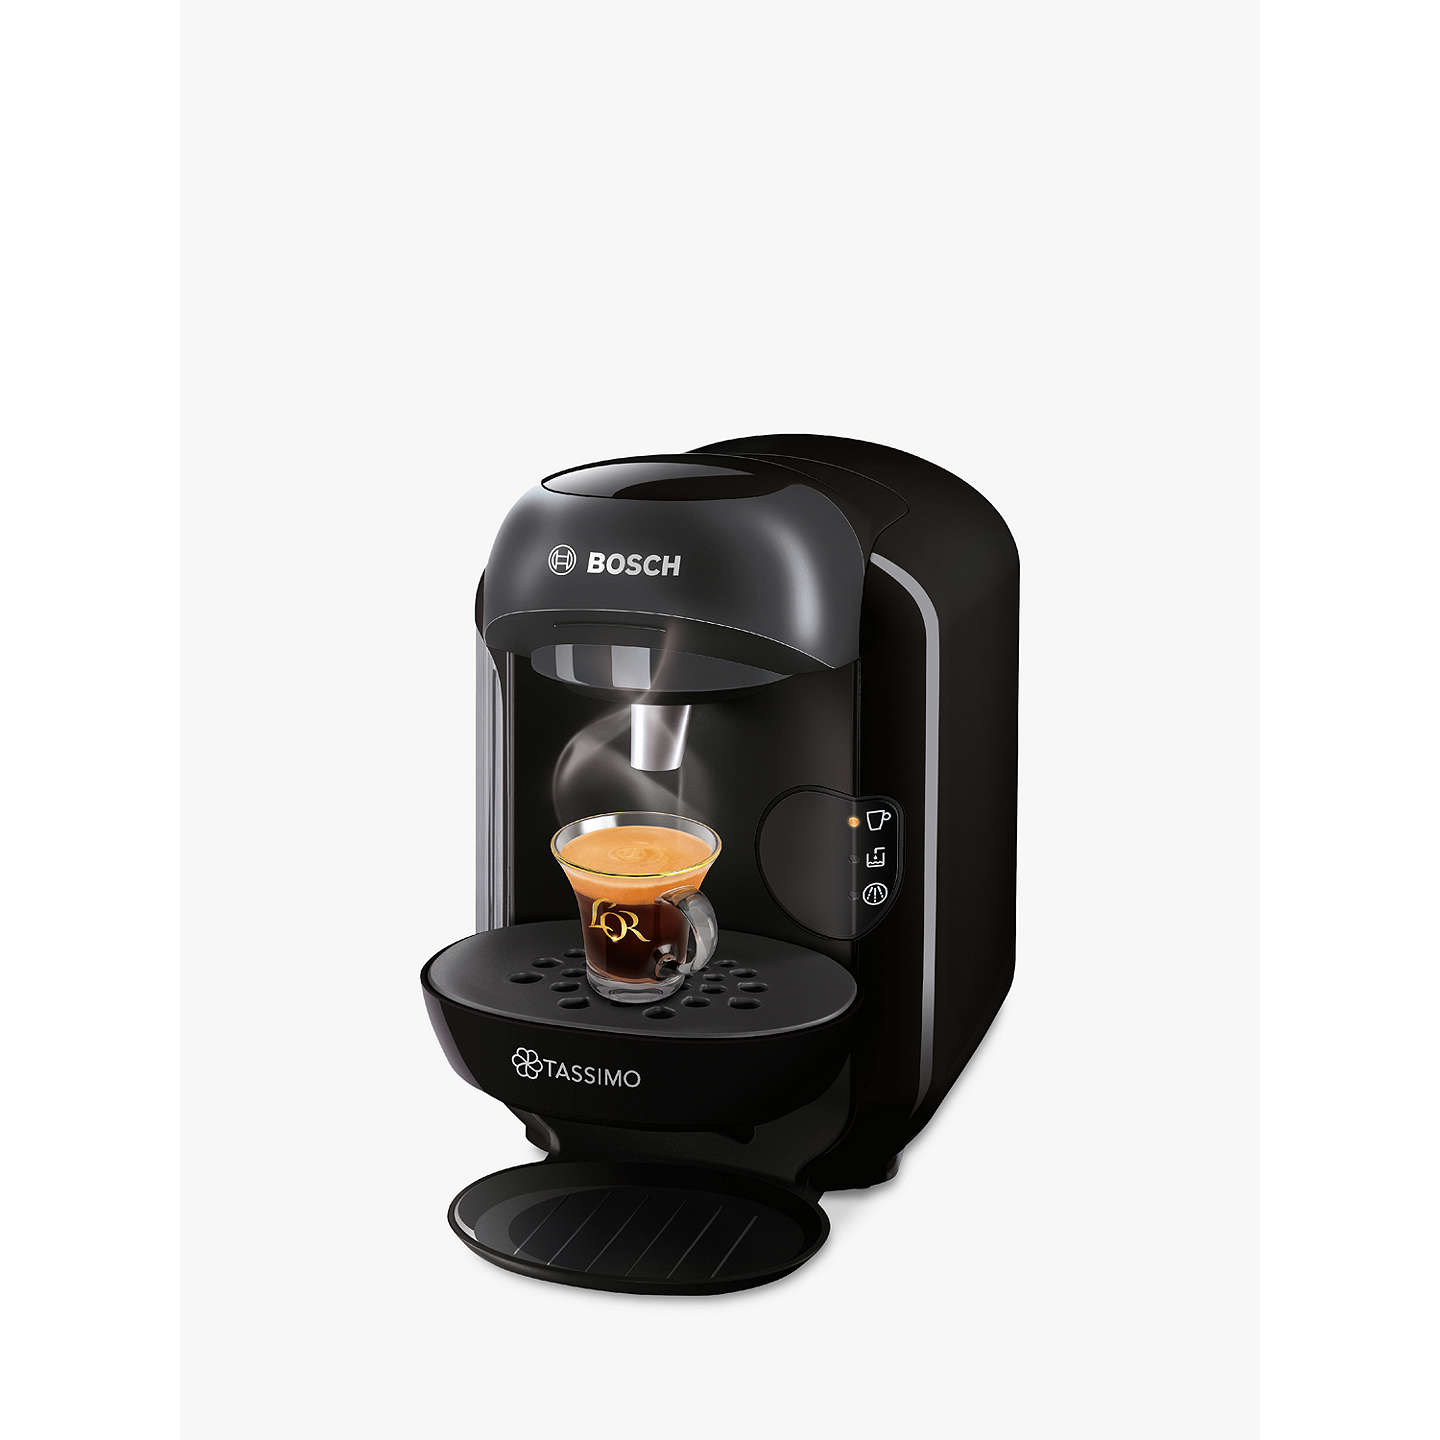 tassimo vivy coffee machine by bosch black at john lewis. Black Bedroom Furniture Sets. Home Design Ideas